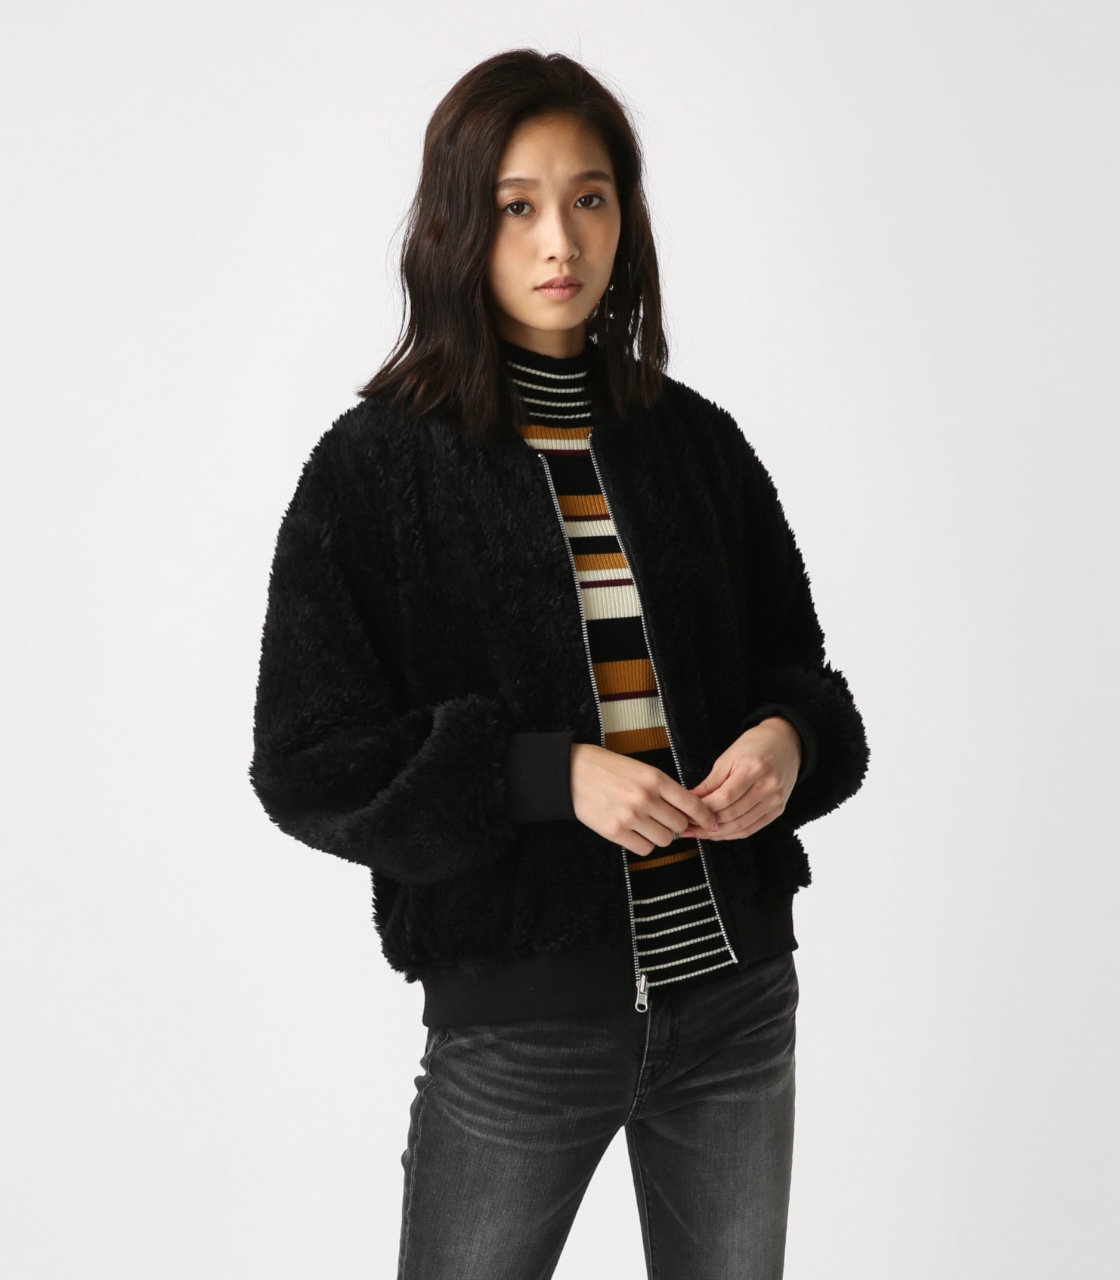 【AZUL BY MOUSSY】リバーシブルボアブルゾン 詳細画像 BLK 4